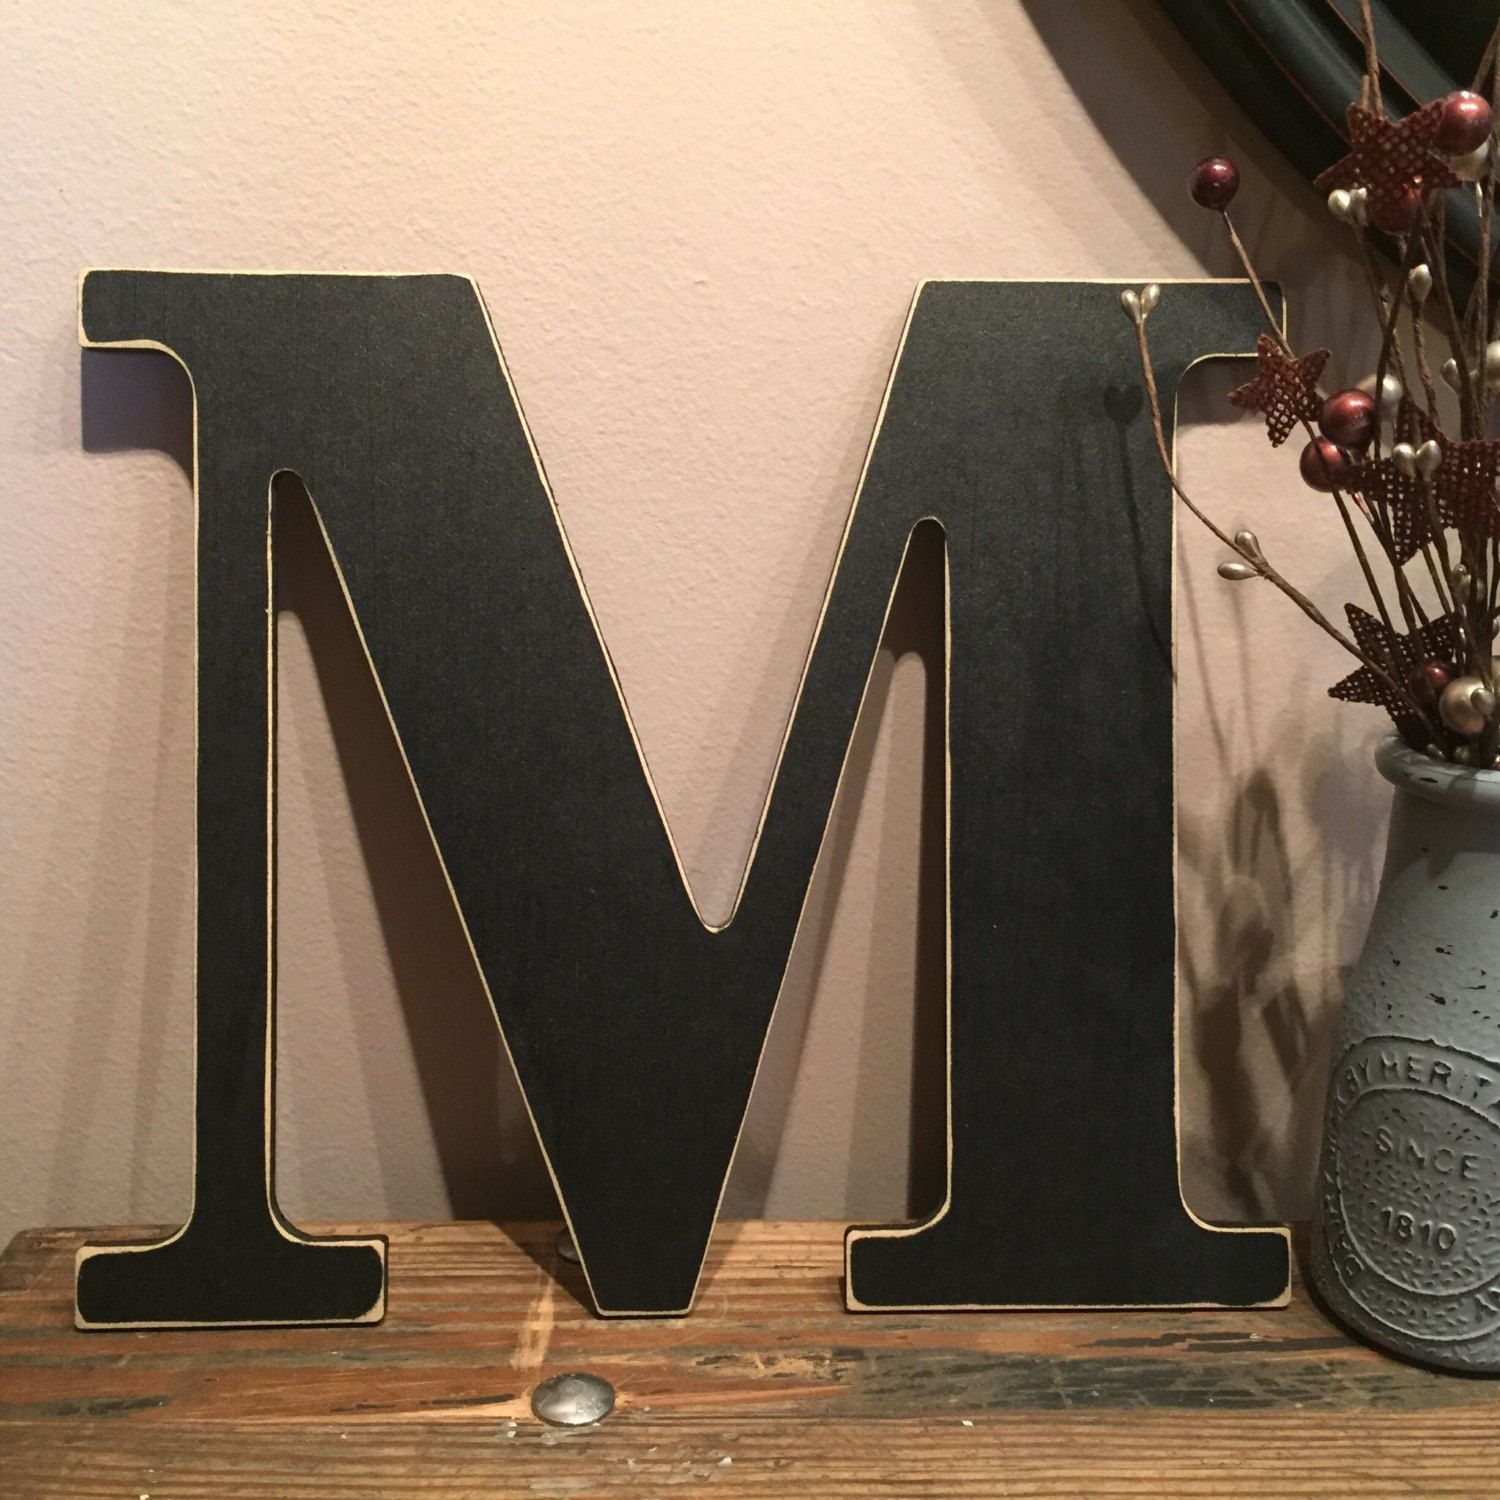 Rustic Black Letters Distressed Initial Letters A B C D E F G H I J K L M N O P Q R S T U V W X Y Z Custom Letter Rustic Black Rustic Letters Black Letter